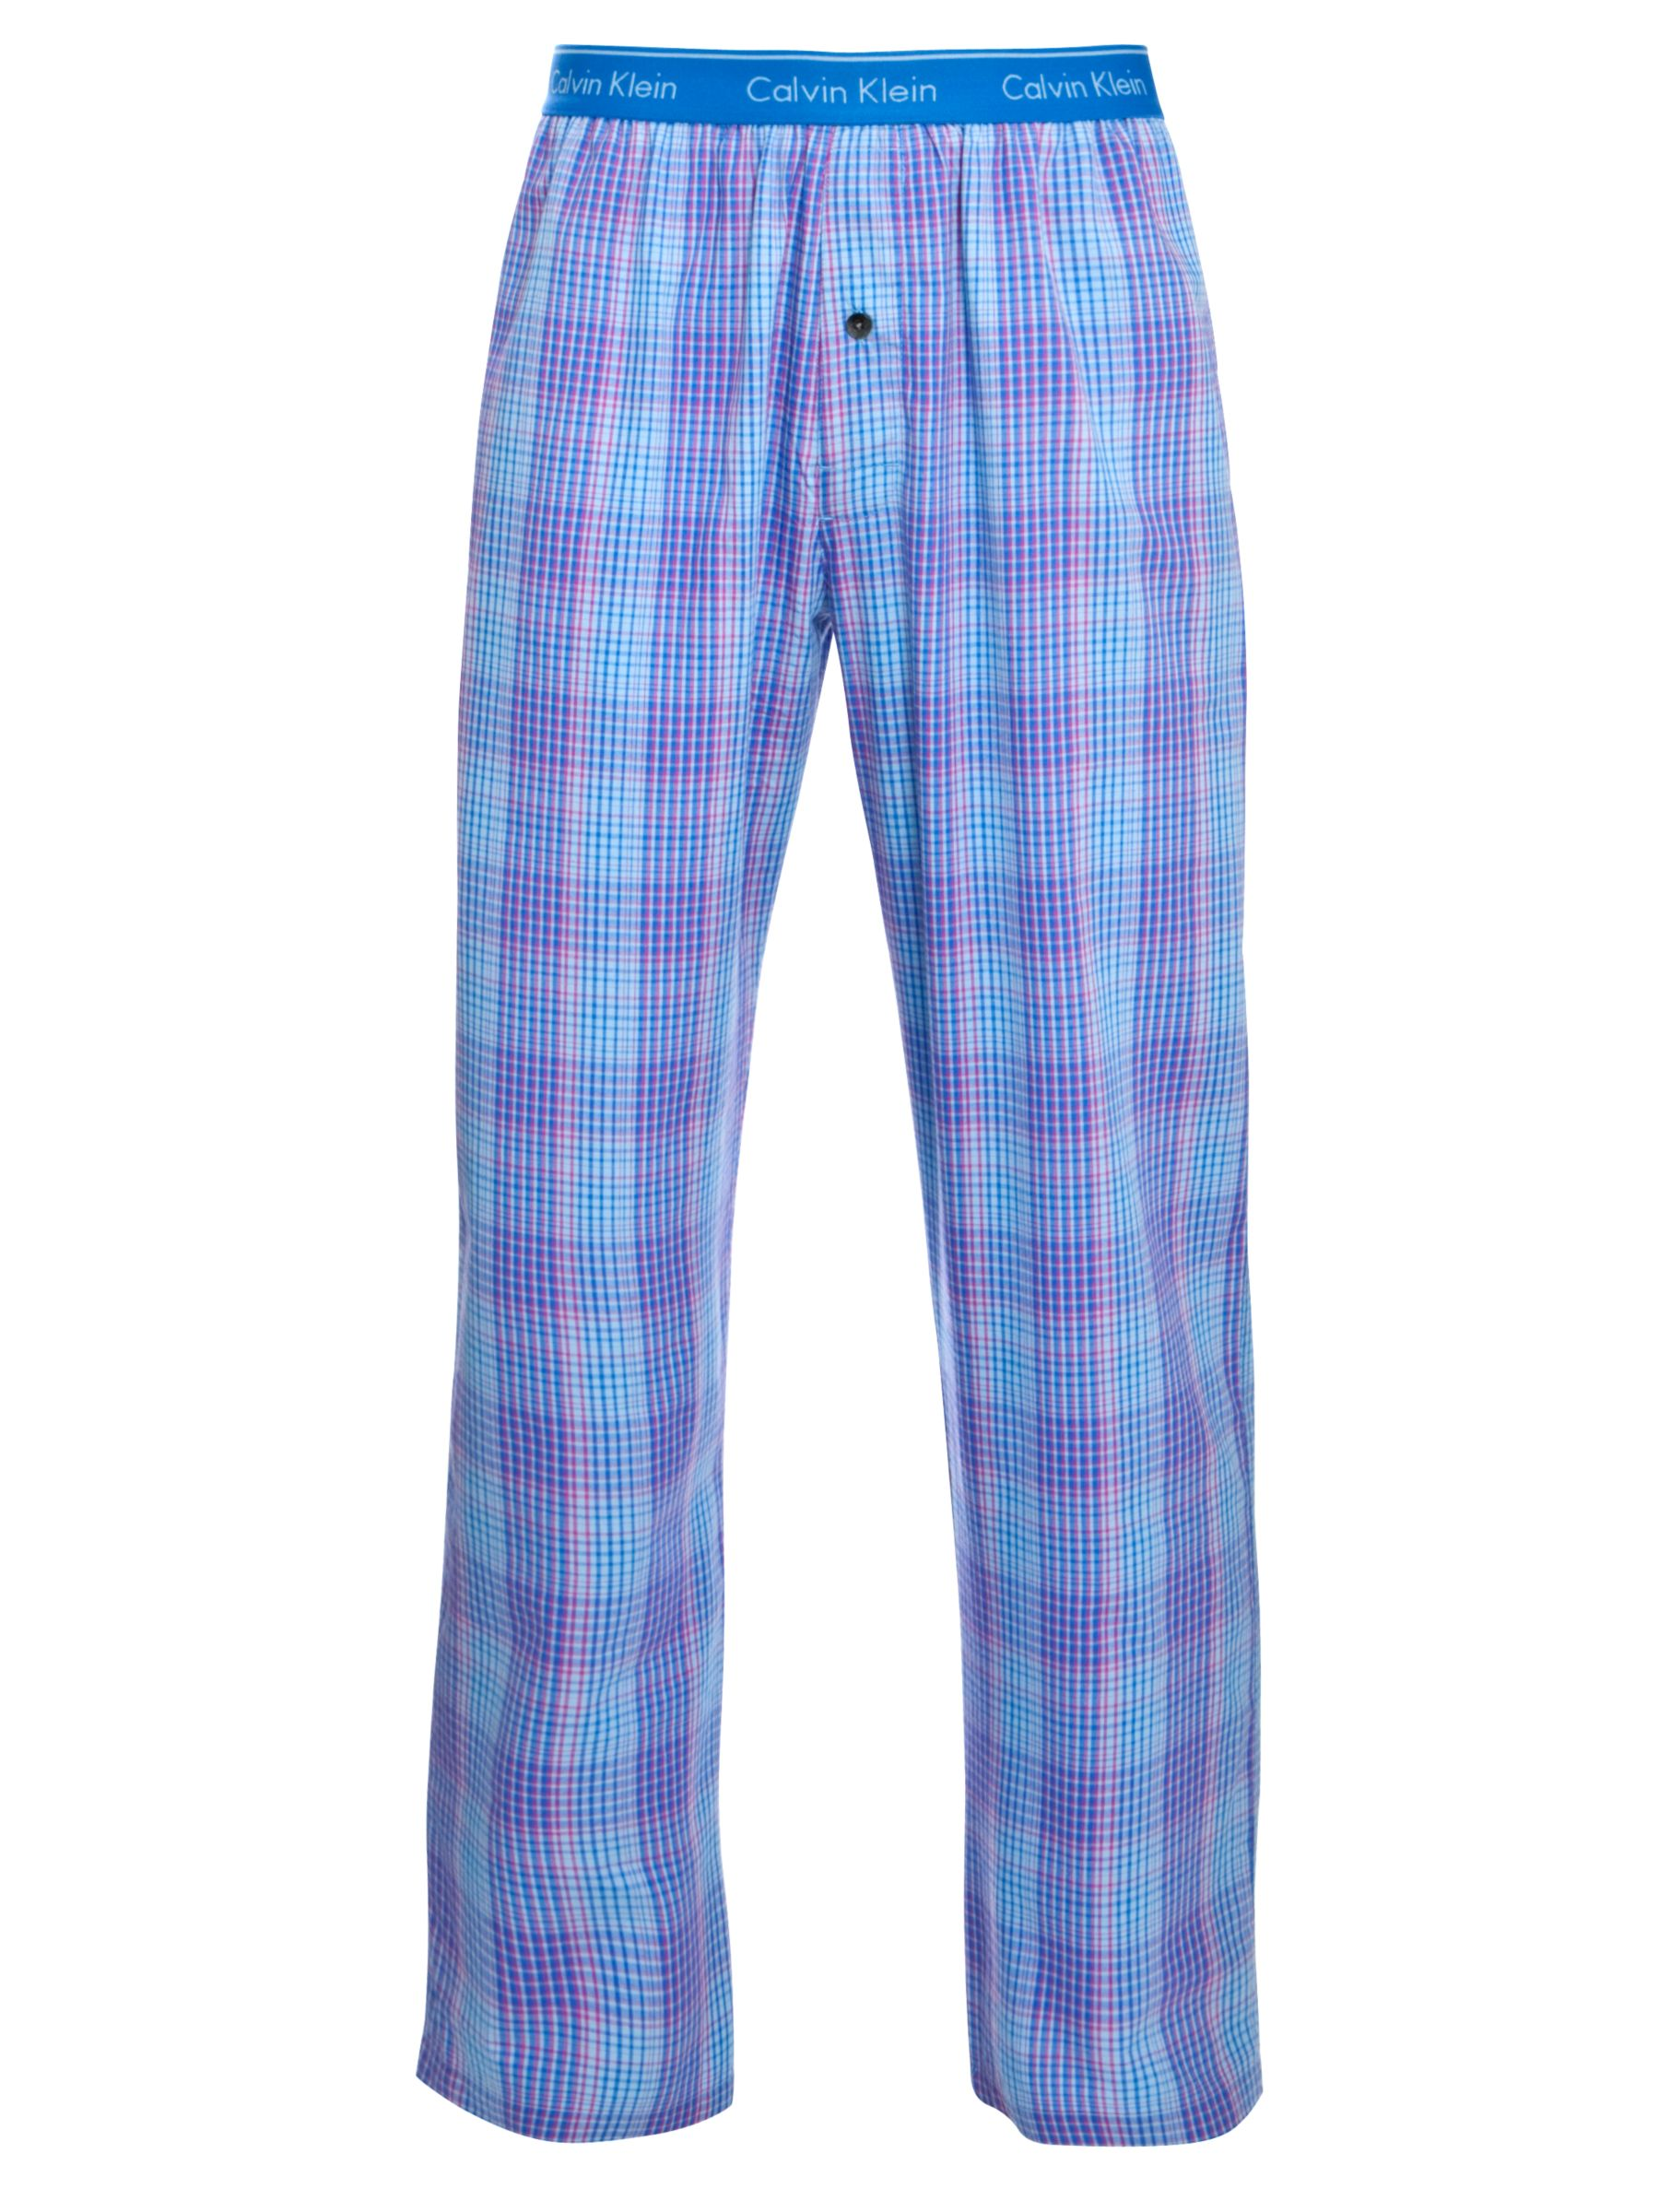 Calvin Klein Crosby Check Pyjama Pants, Blue/Purple